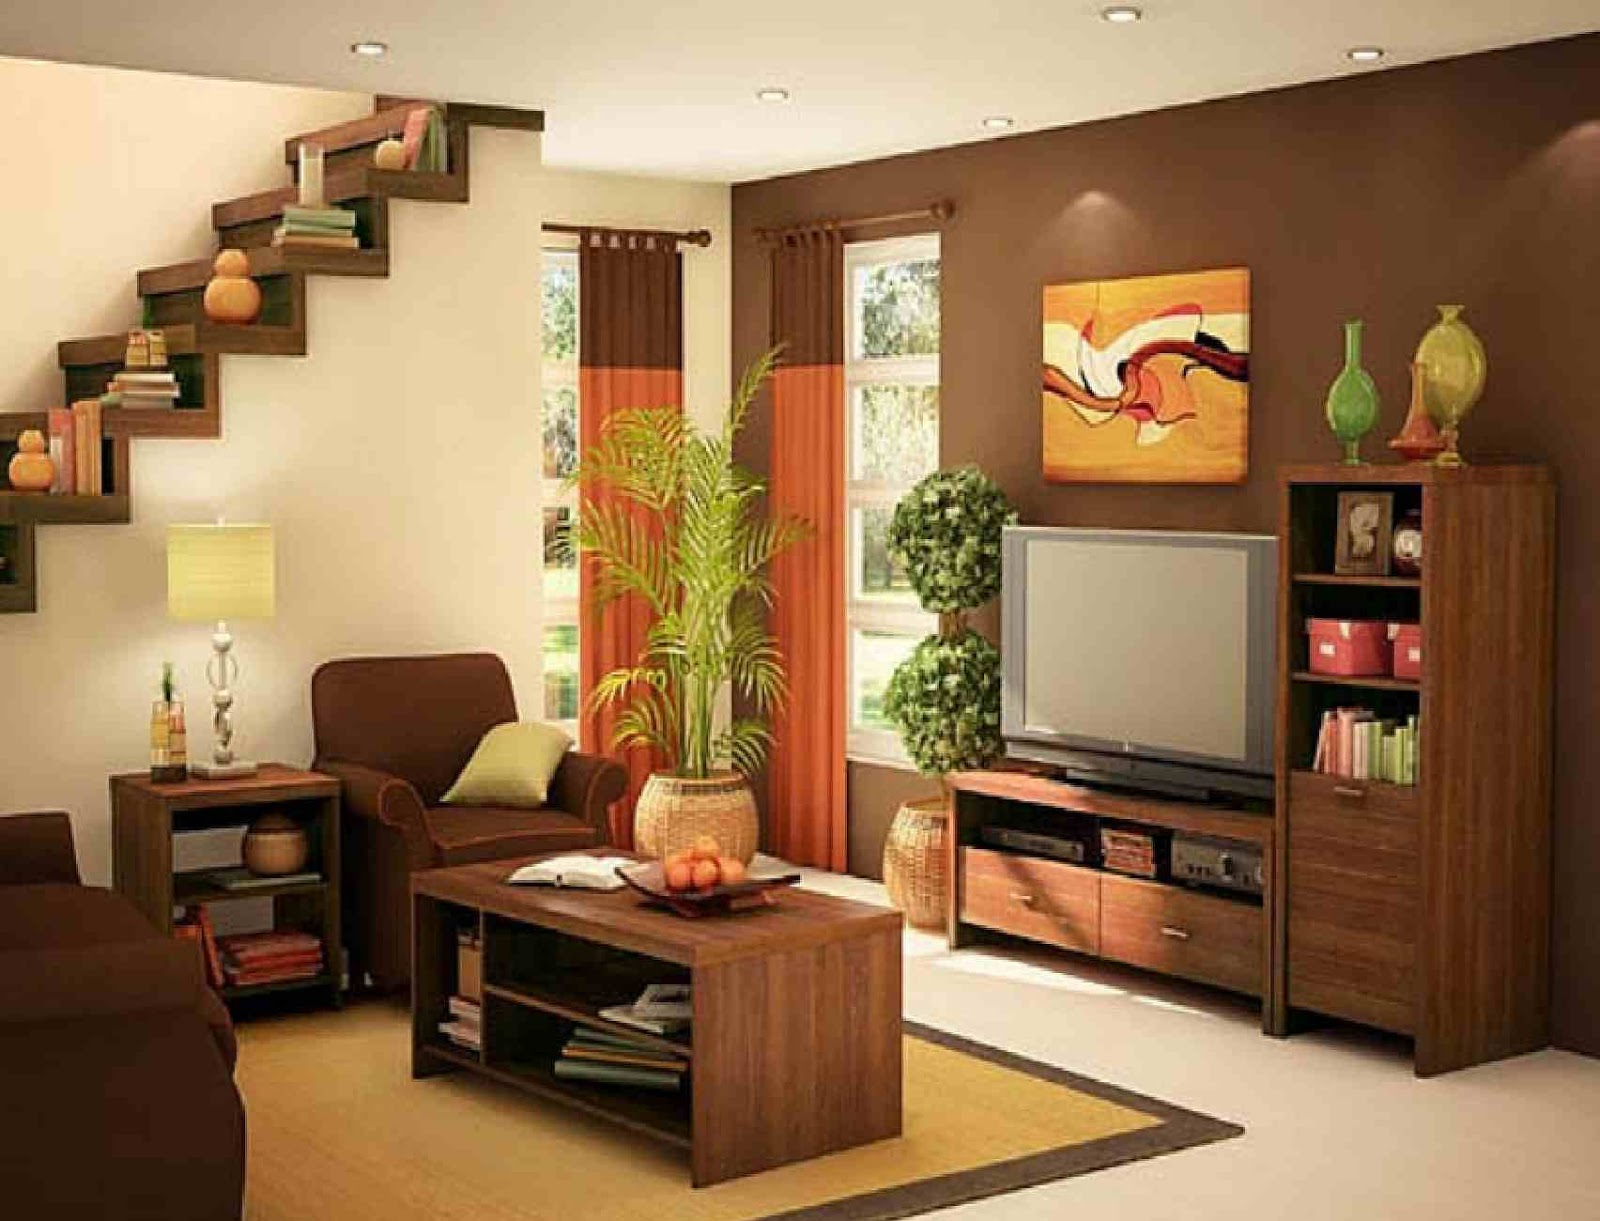 Simple living room designs simple living room designs simple living